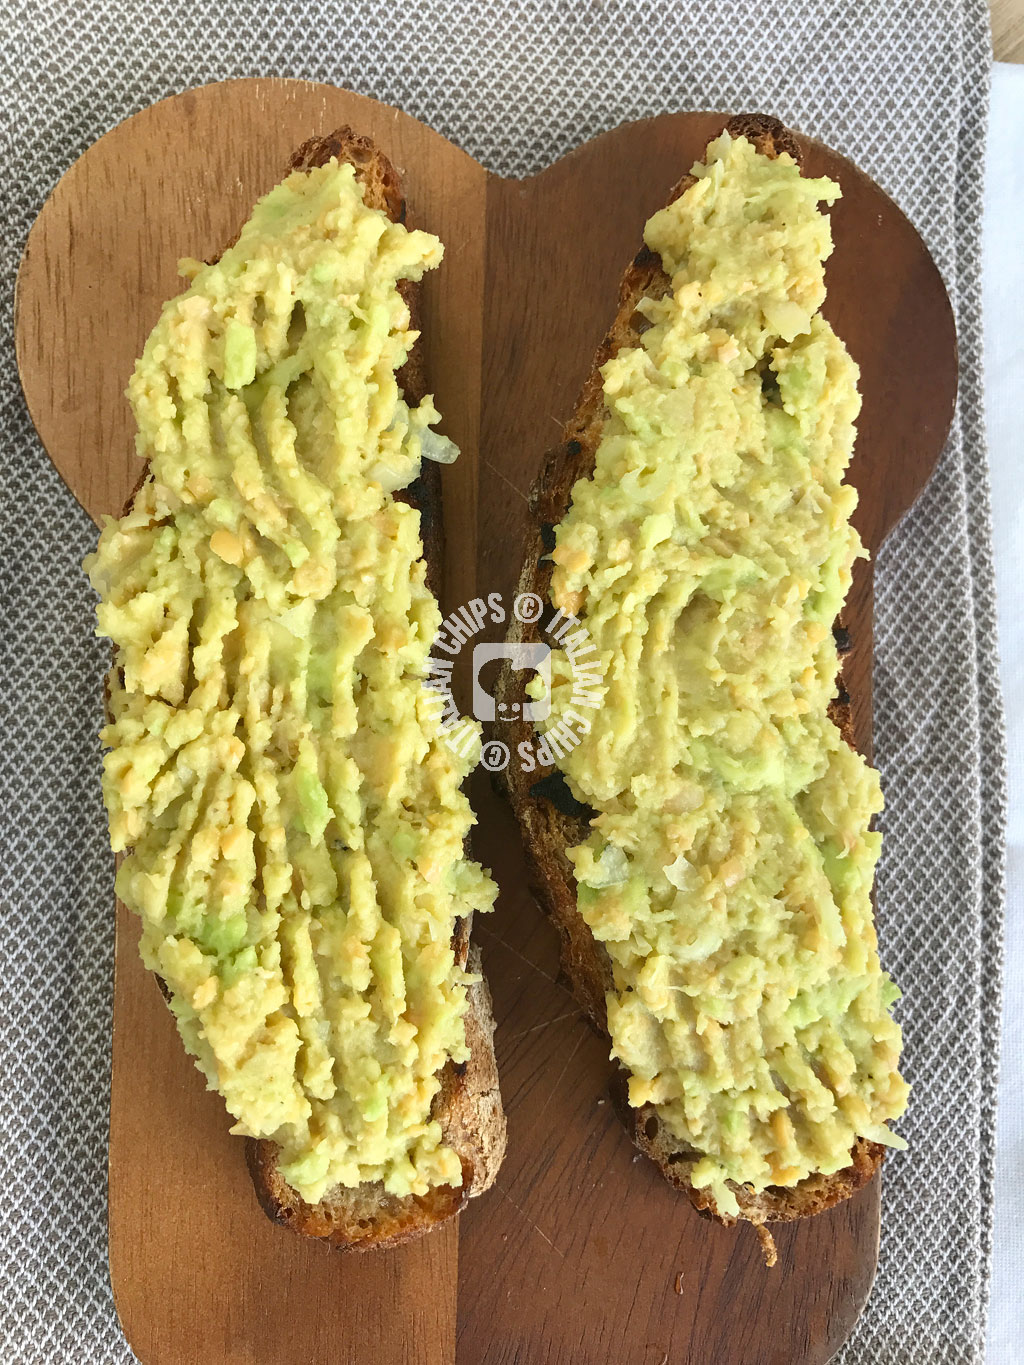 ceci e avocado